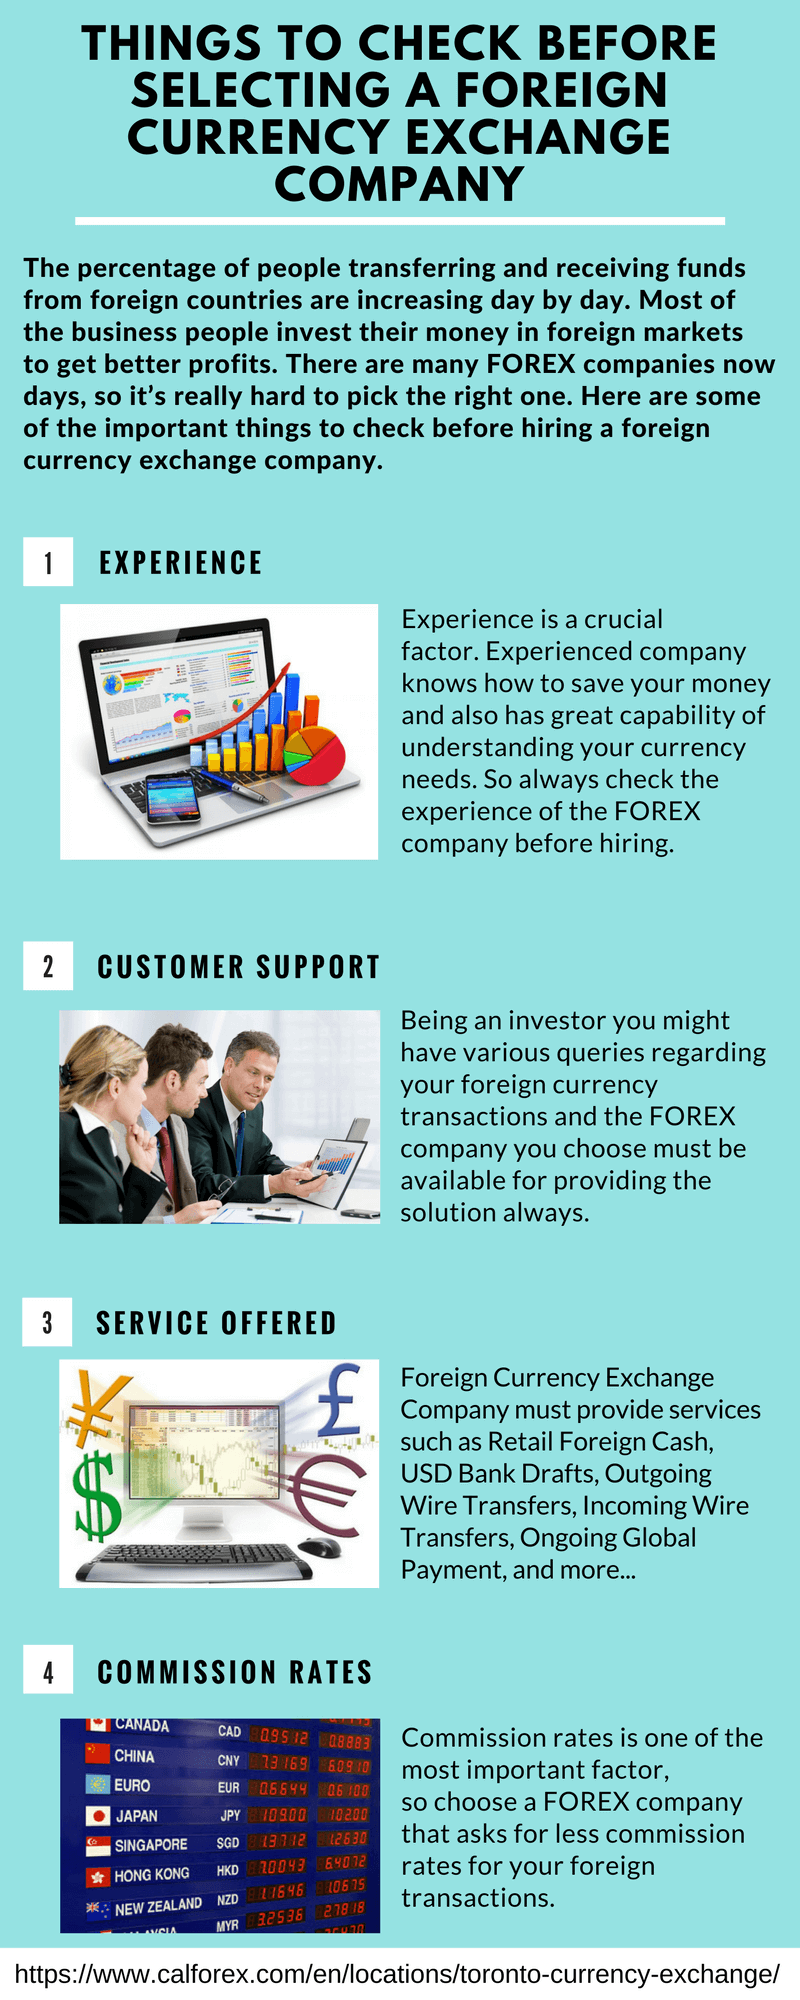 Things to Check before Selecting a Foreign Currency Exchange Company